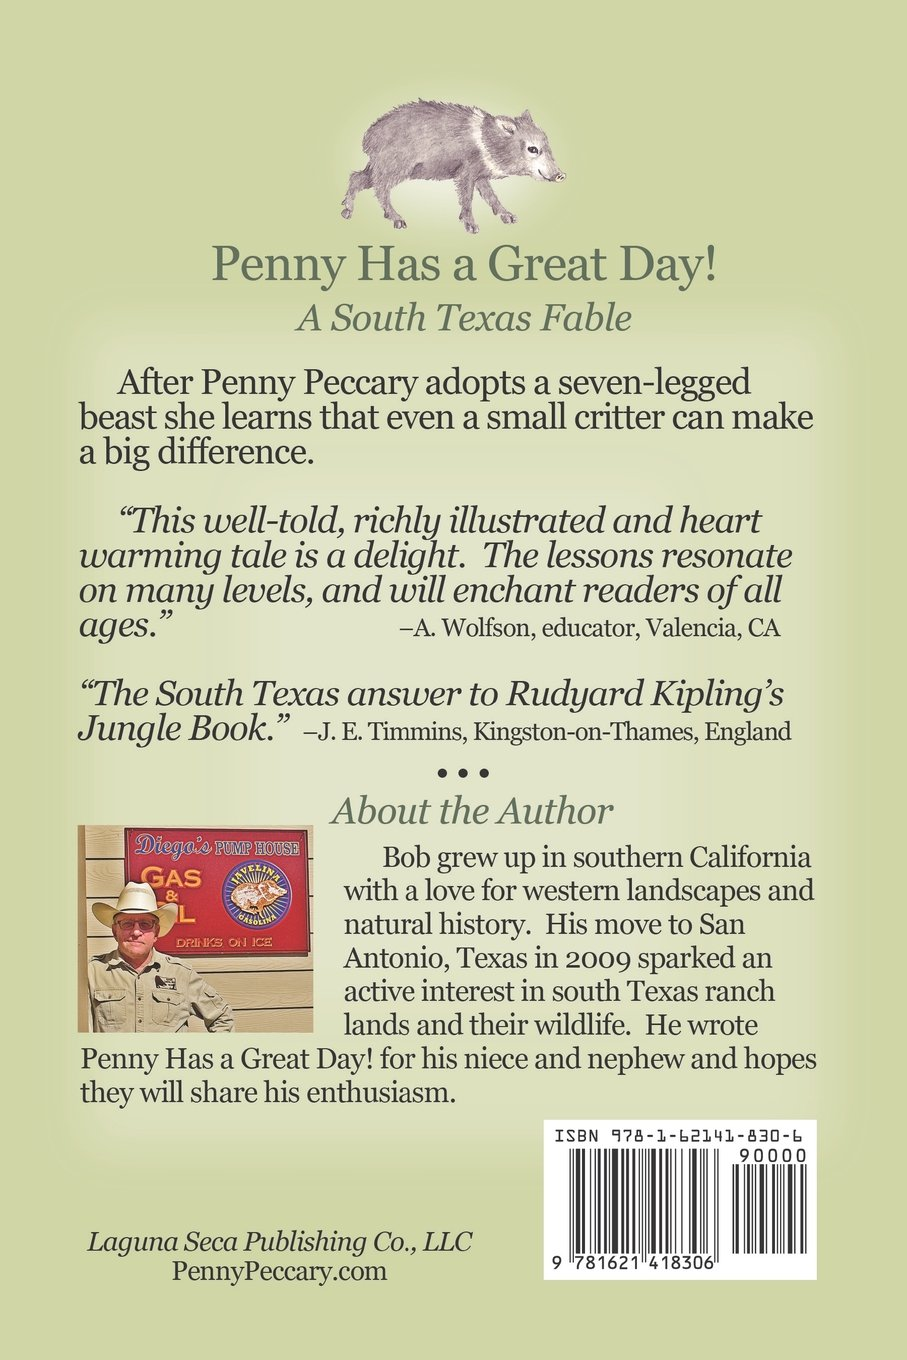 PENNY HAS A GREAT DAY! A South Texas Fable